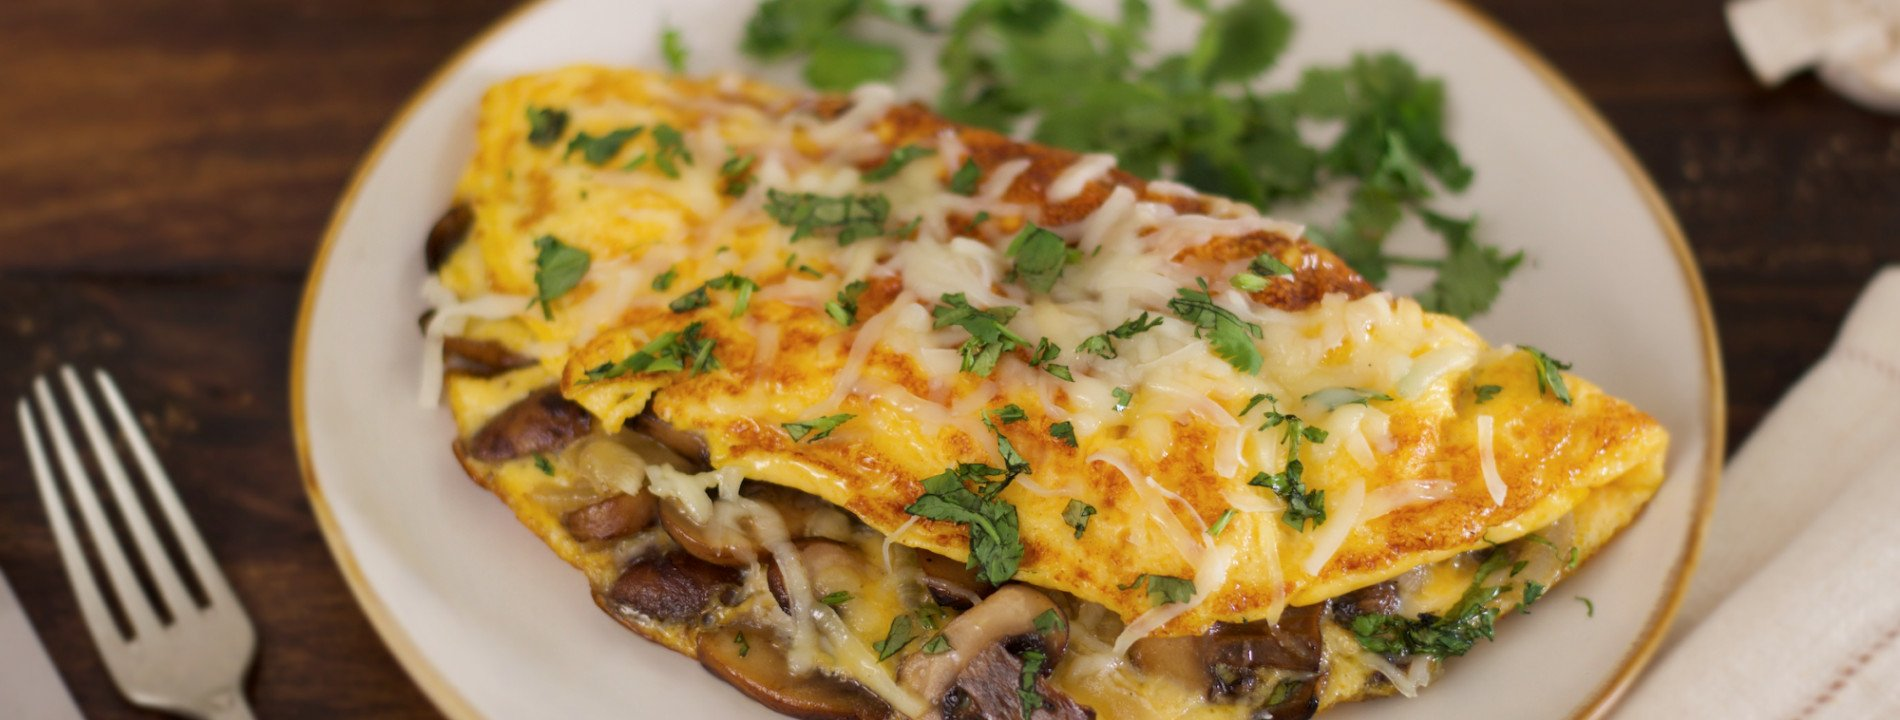 Onion and Mushroom Omelet